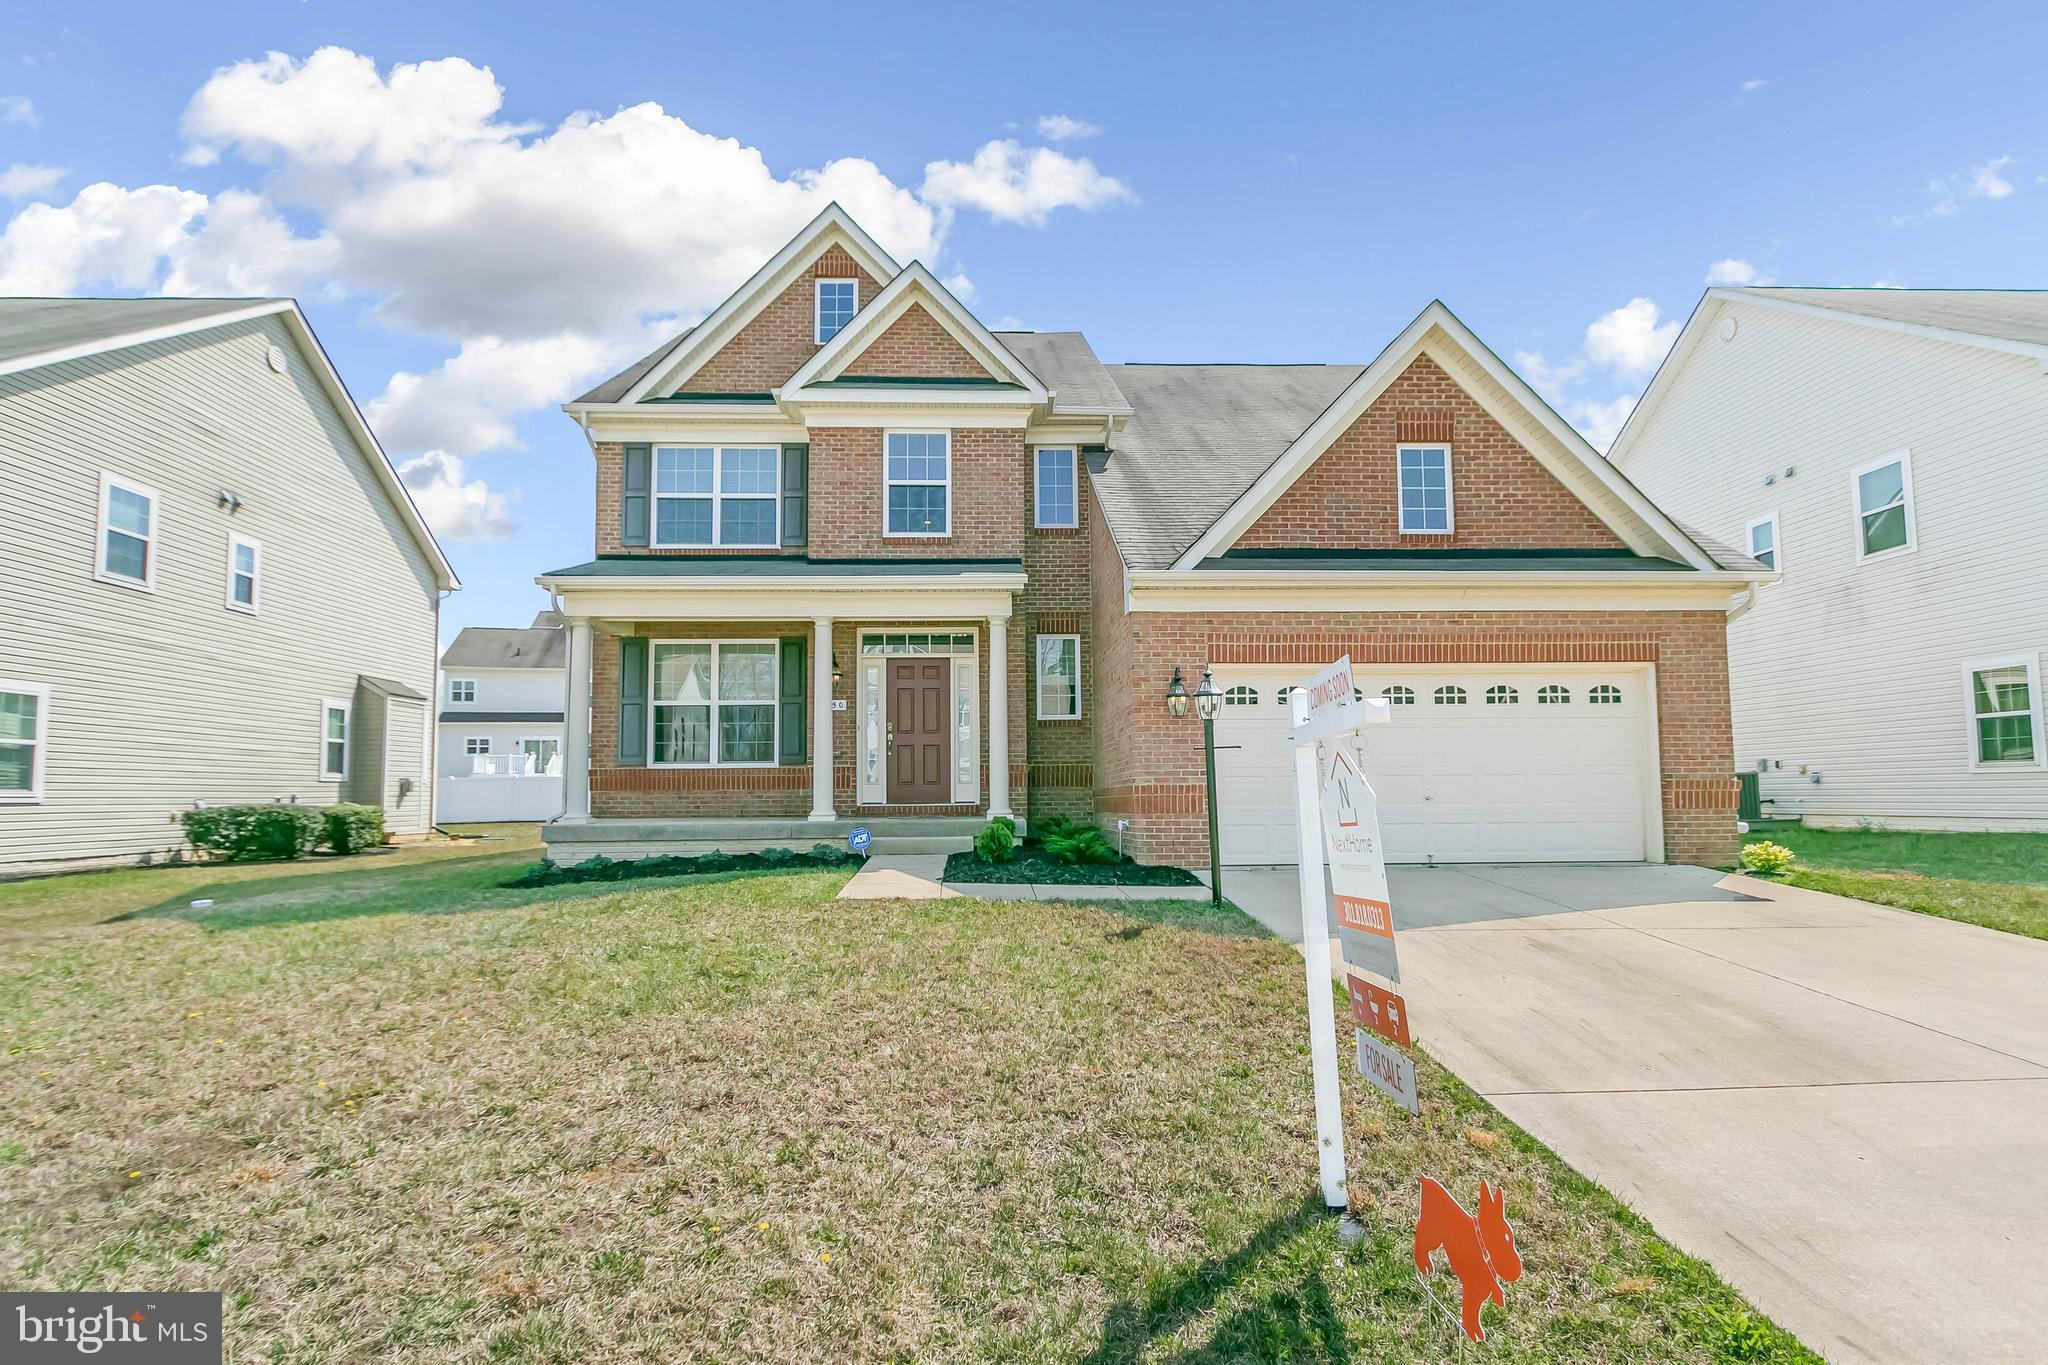 A fantastic opportunity, this home features 4 BR, 2.5 BA, 2-car garage with 9-foot ceilings on 1st f